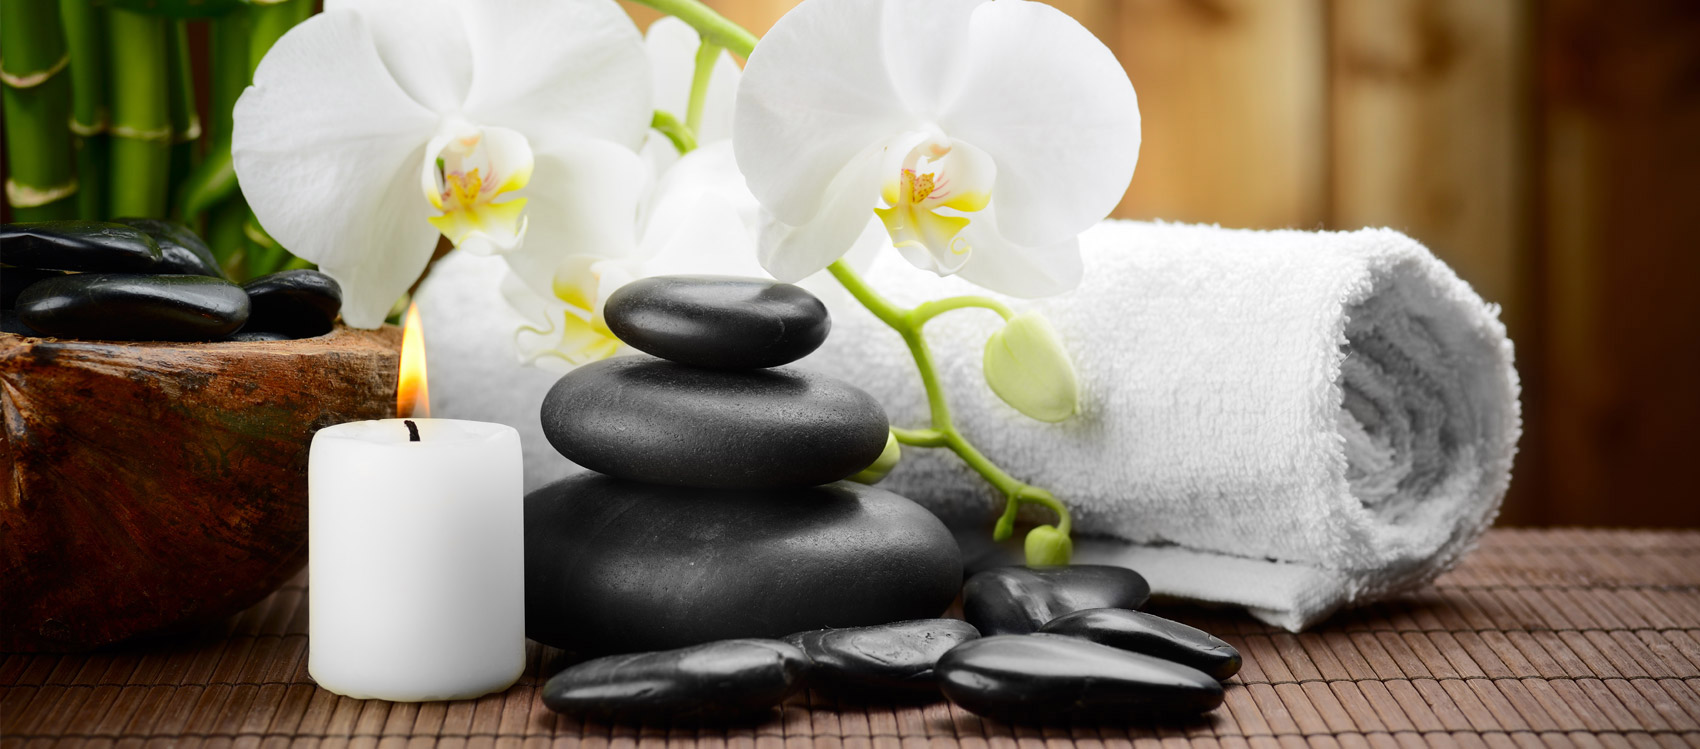 Flowers, towels and a balanced stack of massaging stones